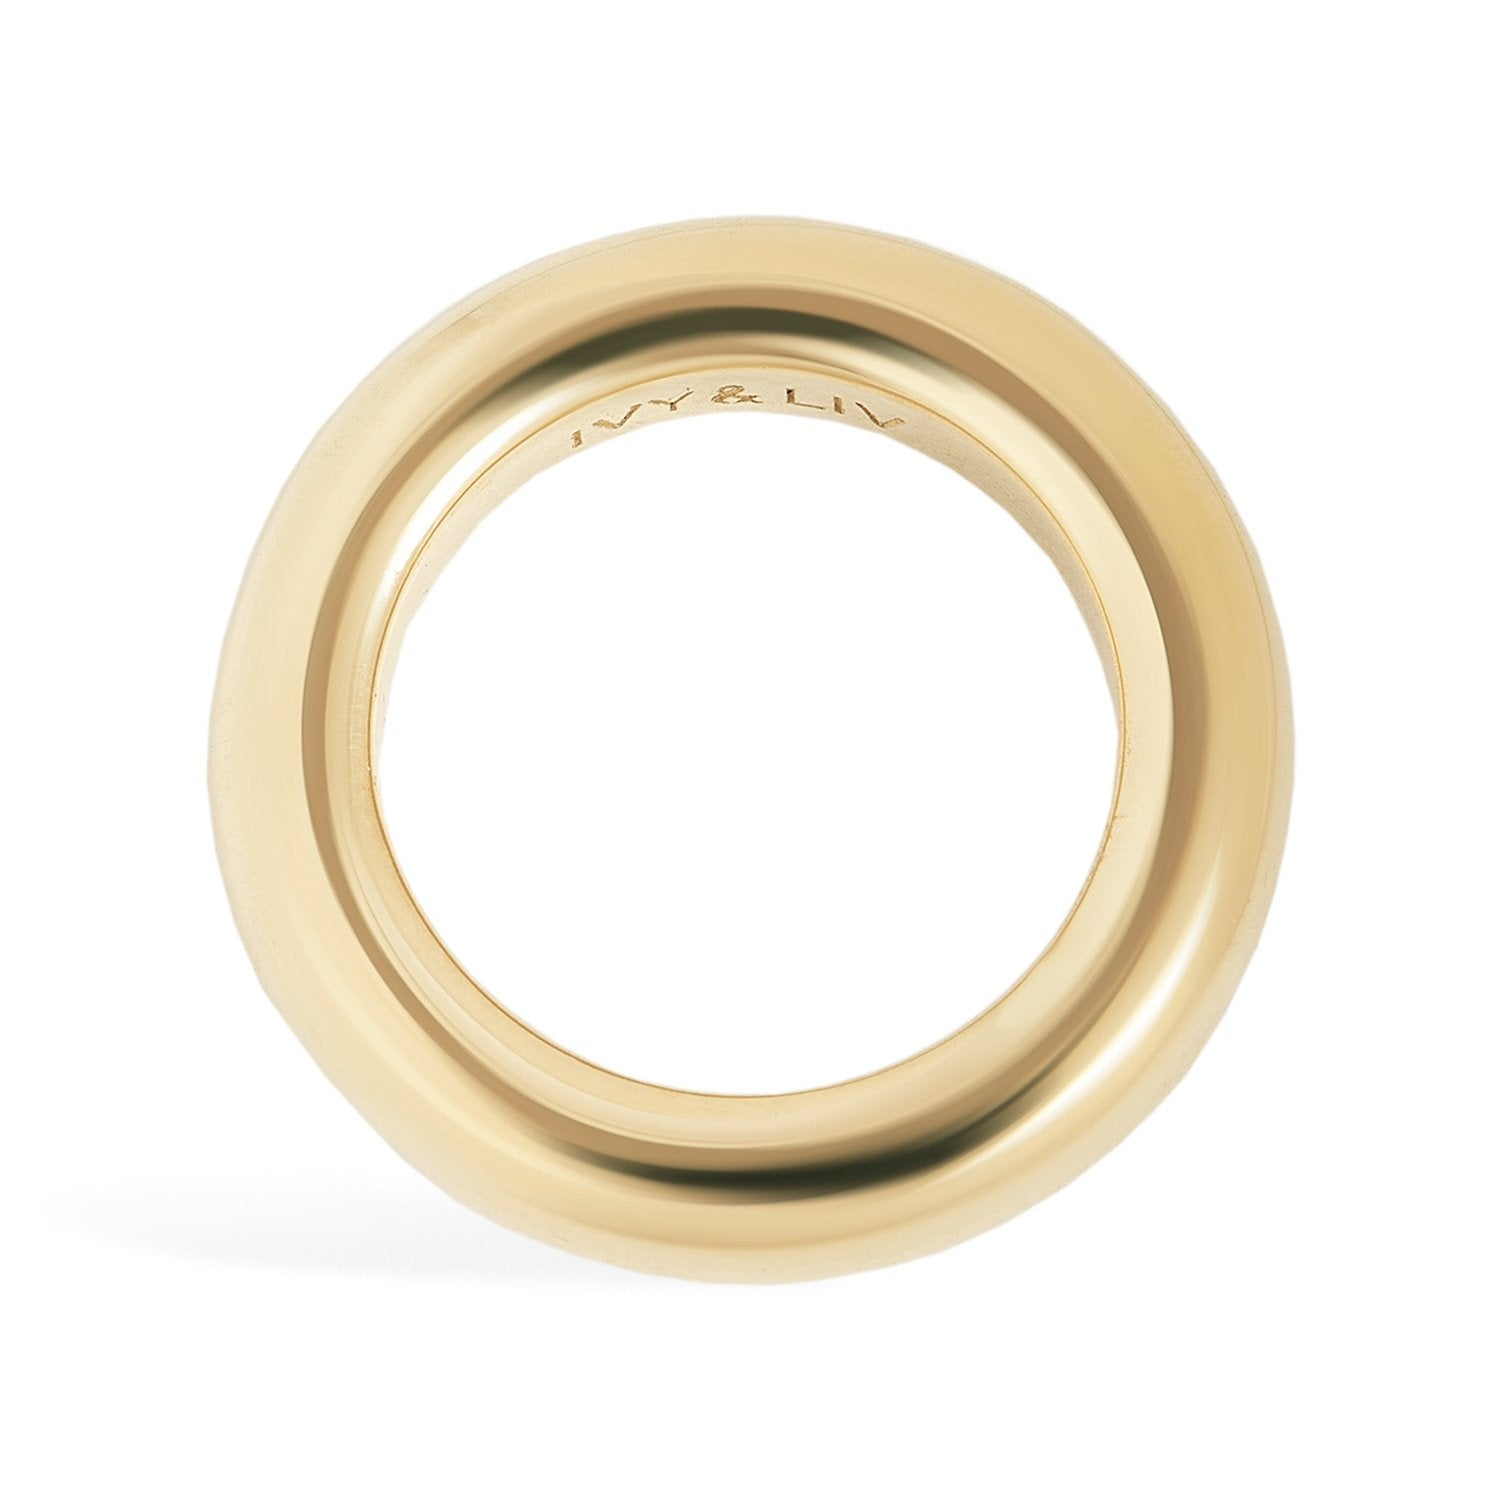 Elementary Ring 5.0 gold